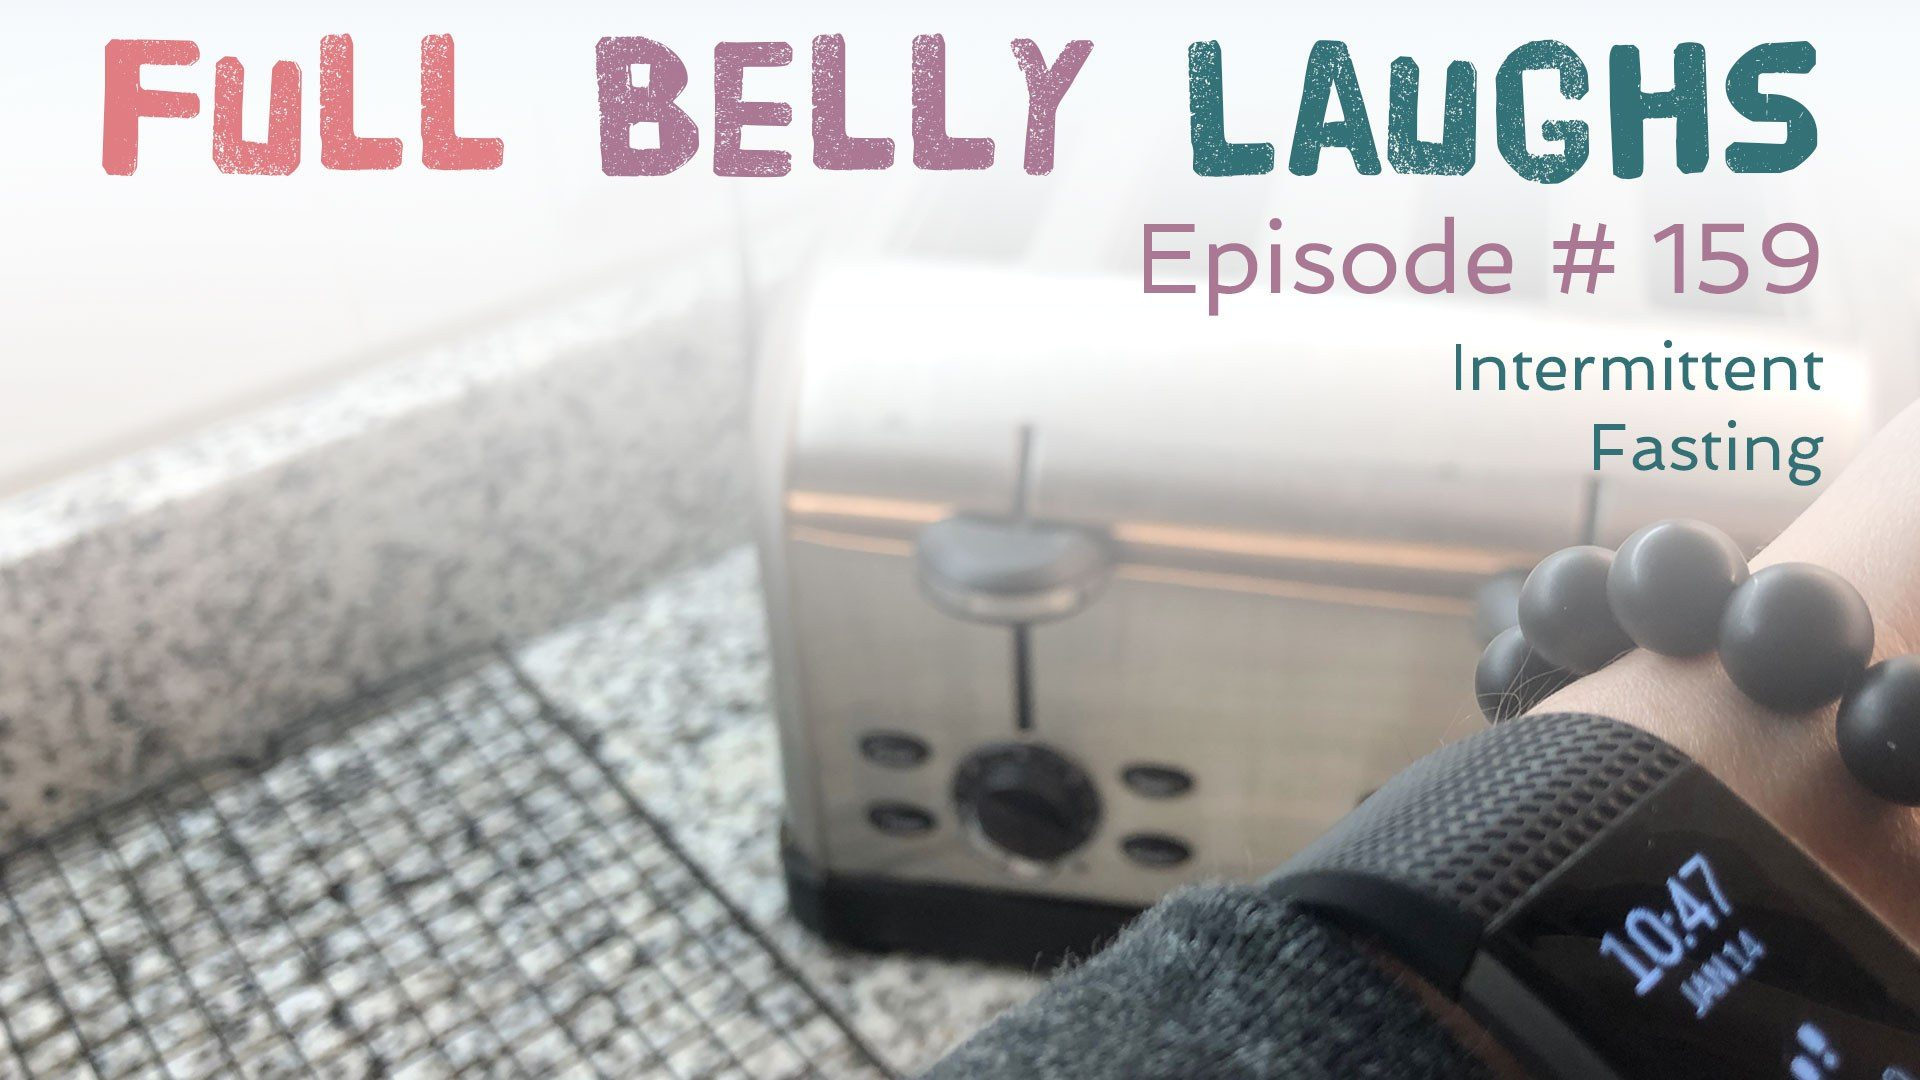 full belly laughs podcast episode 159 intermittent fasting audio artwork